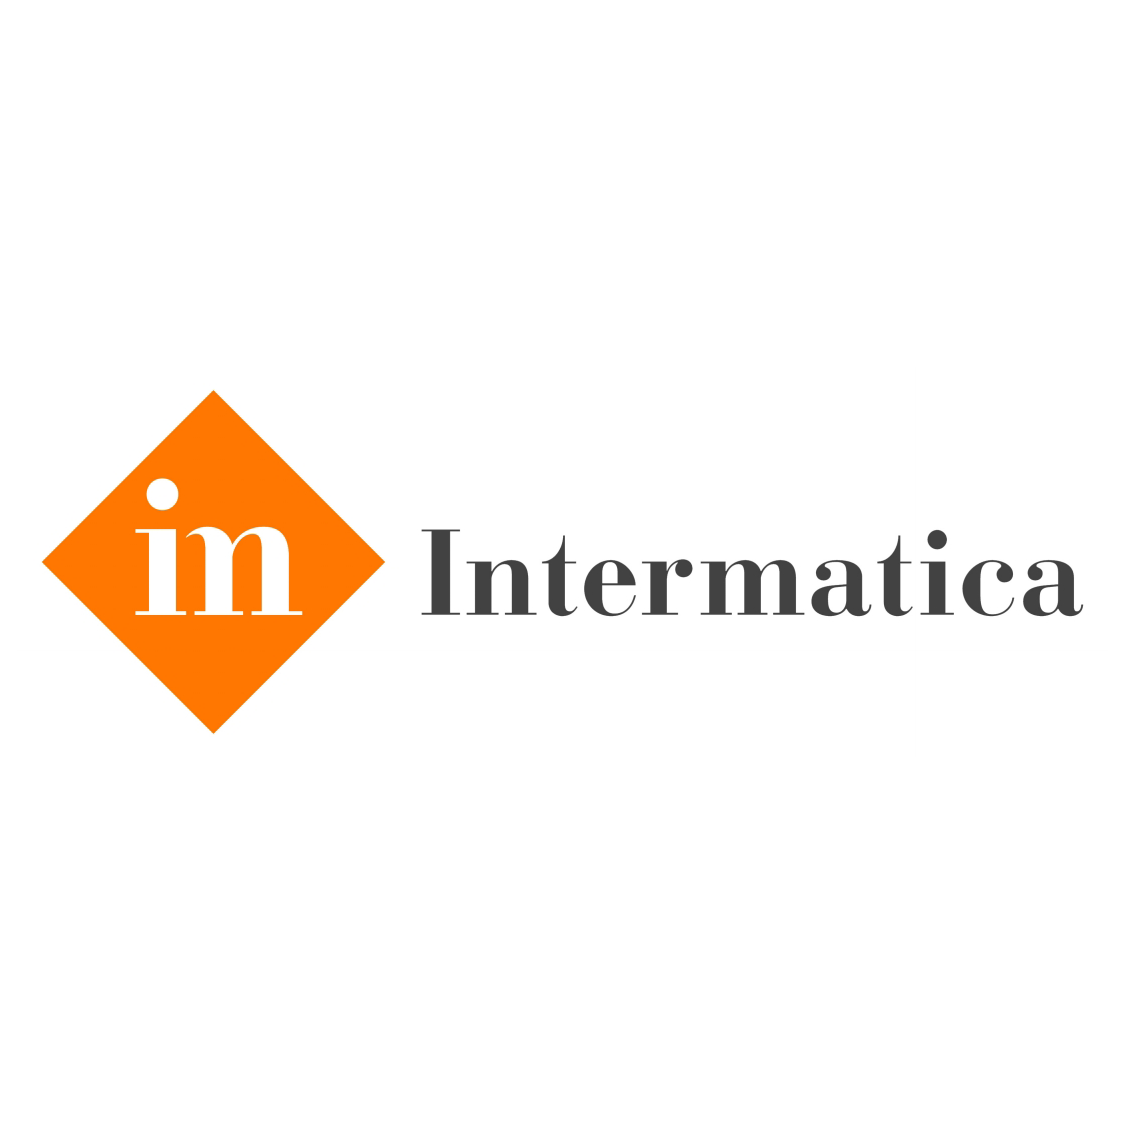 Unlock Intermatica Italy iPhone 11 (Pro/Max), XS, XR, X, 8, 7, 6S